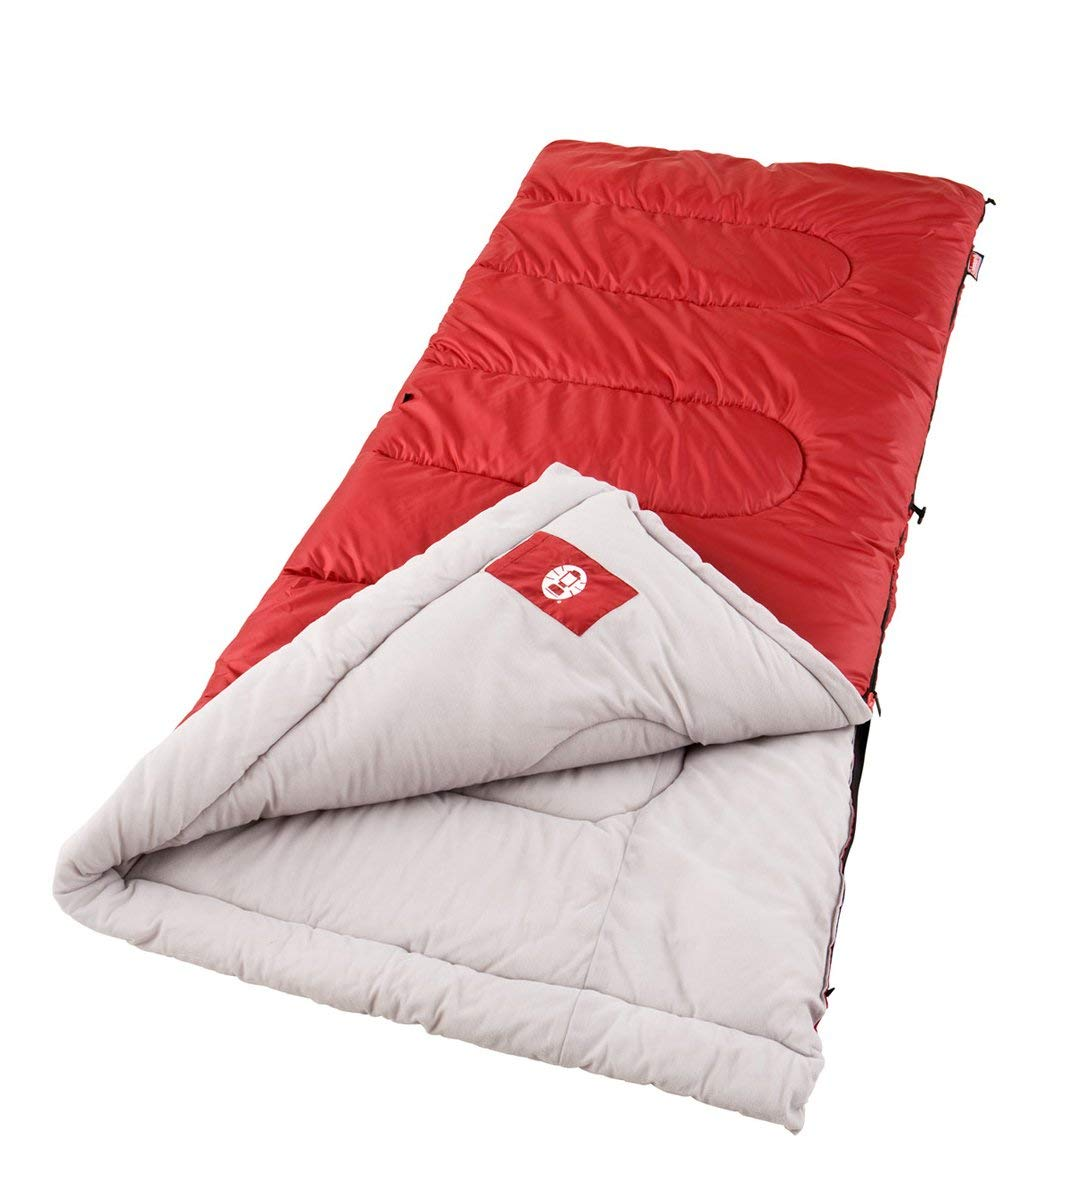 An image related to Coleman Palmetto 2000004418 Men's Sleeping Bag